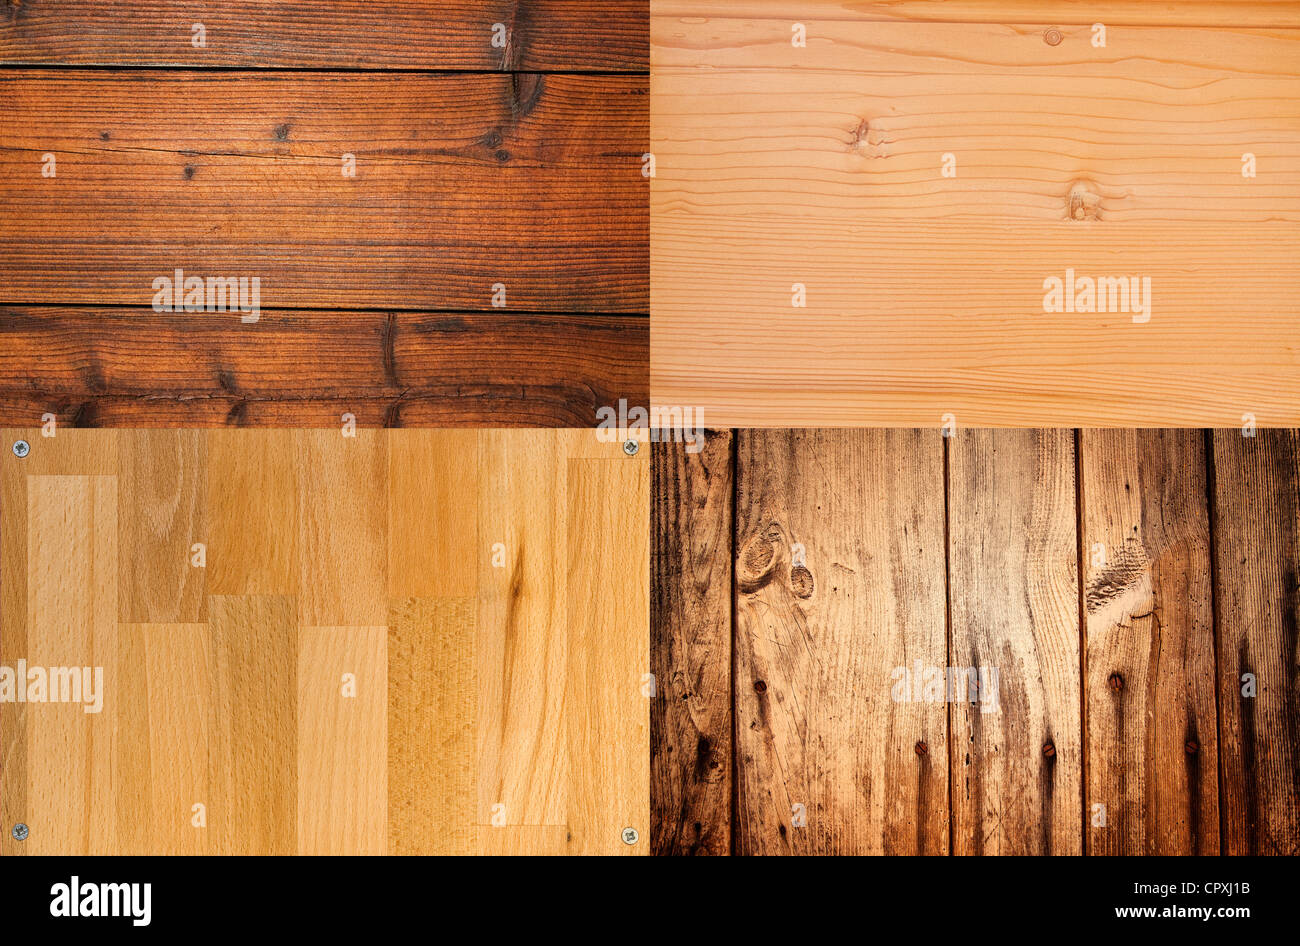 seamless brown wood texture stockfotos seamless brown wood texture bilder alamy. Black Bedroom Furniture Sets. Home Design Ideas